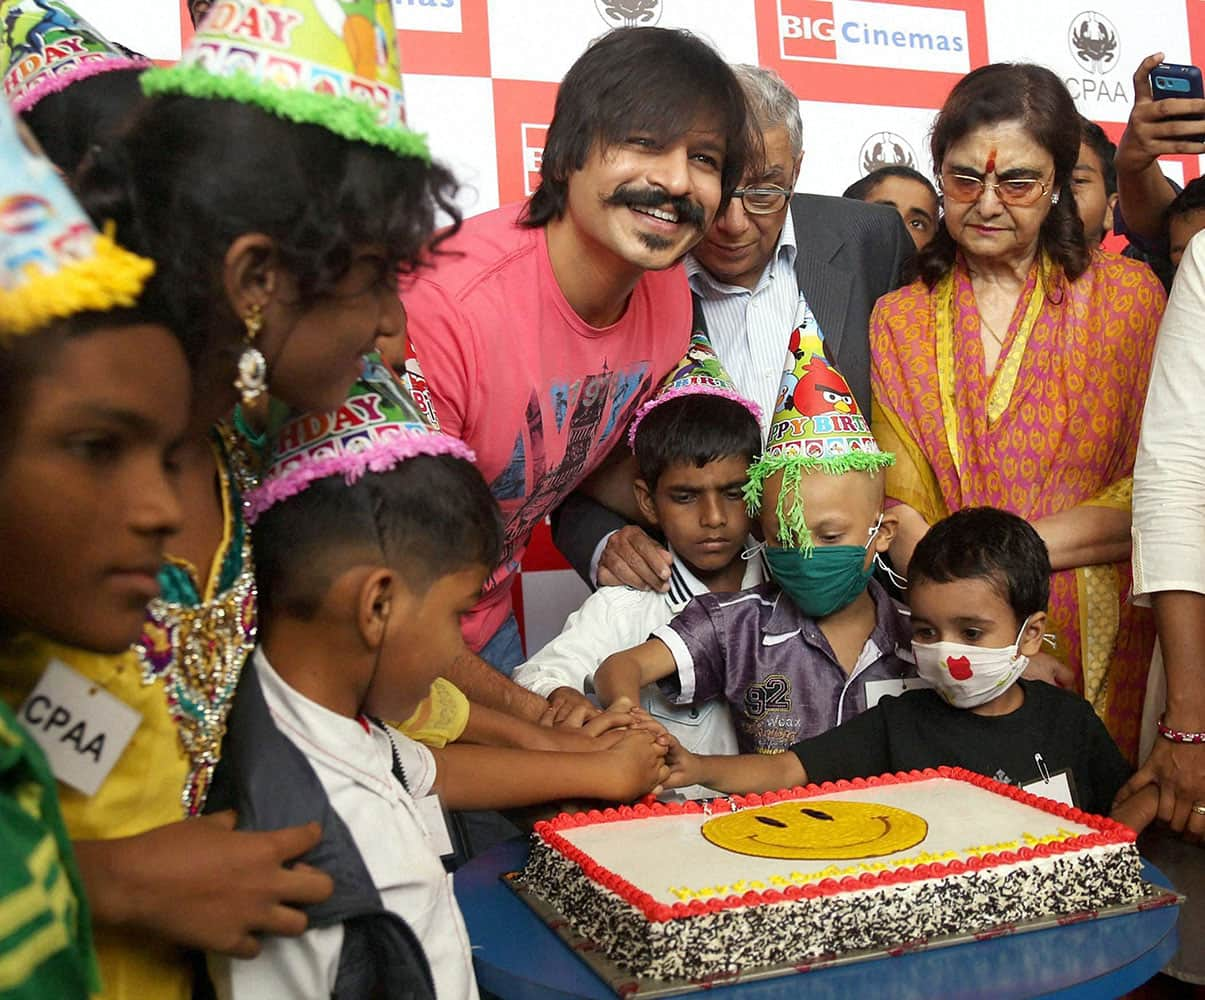 Bollywood actor and brand ambassador of Cancer Patients Aid Association [CPAA] Vivek Oberoi celebrates his Birthday along with the Cancer Patients in Mumbai.